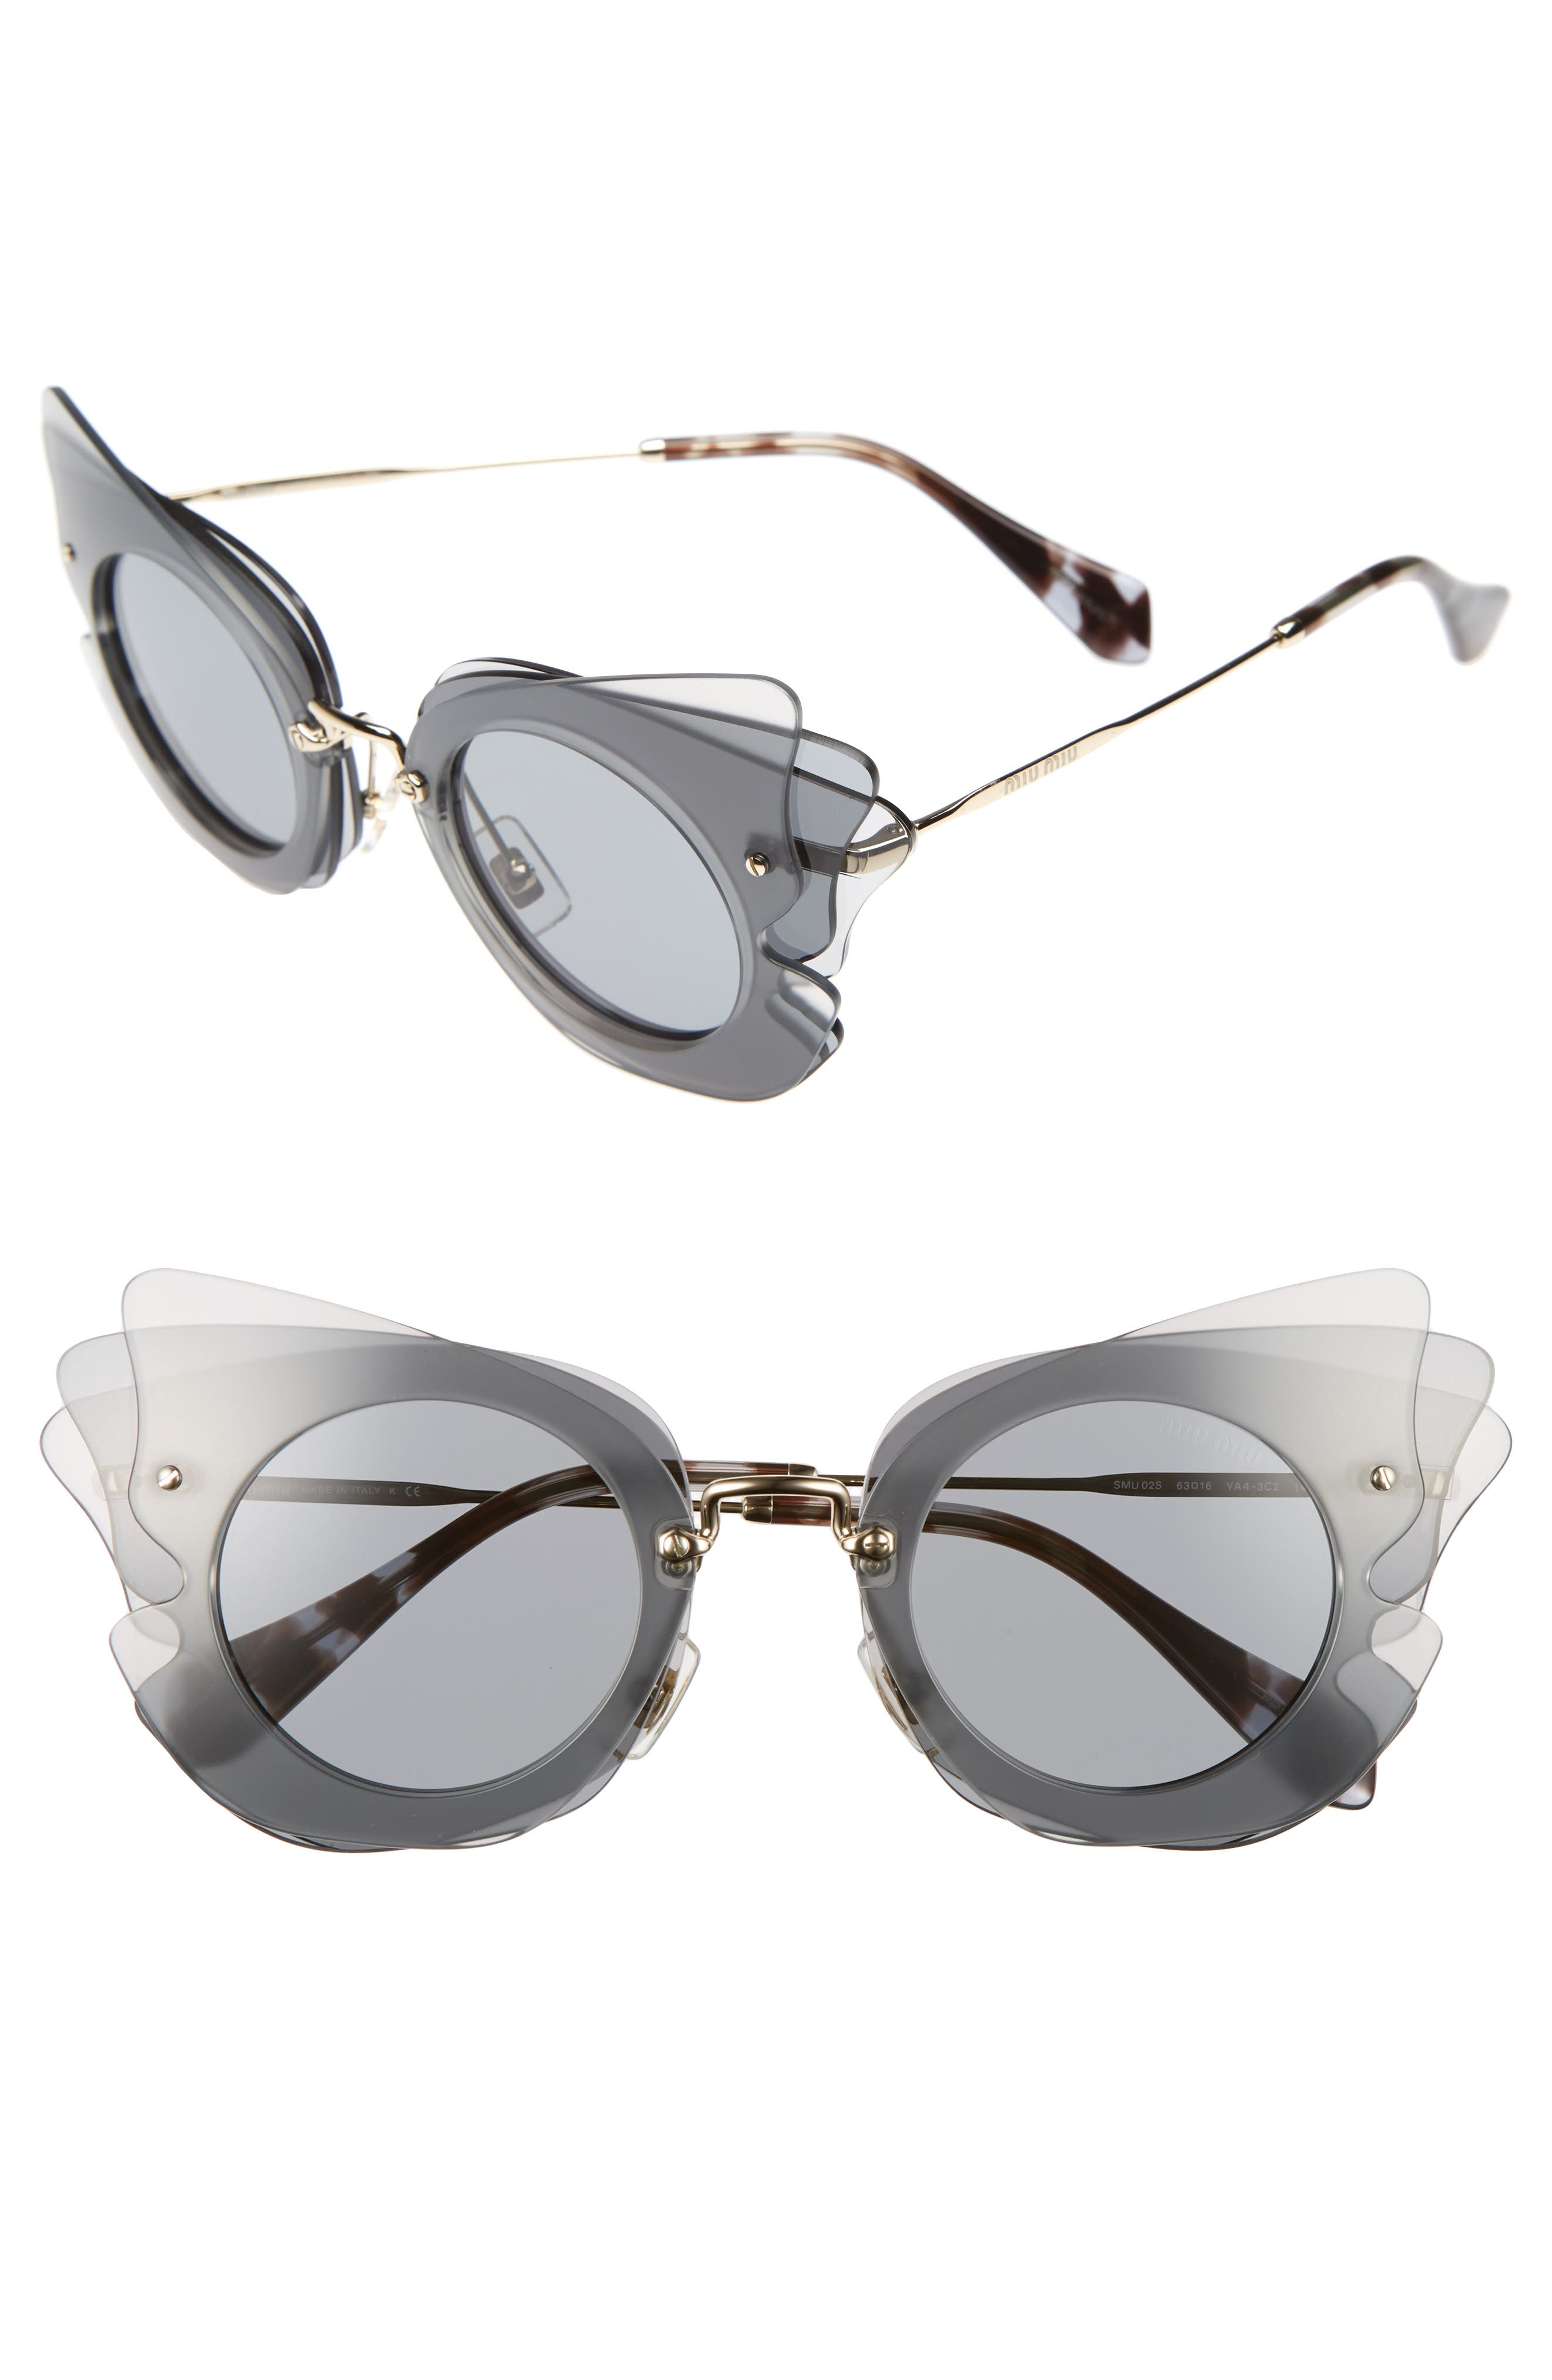 63mm Layered Butterfly Sunglasses,                             Main thumbnail 1, color,                             020